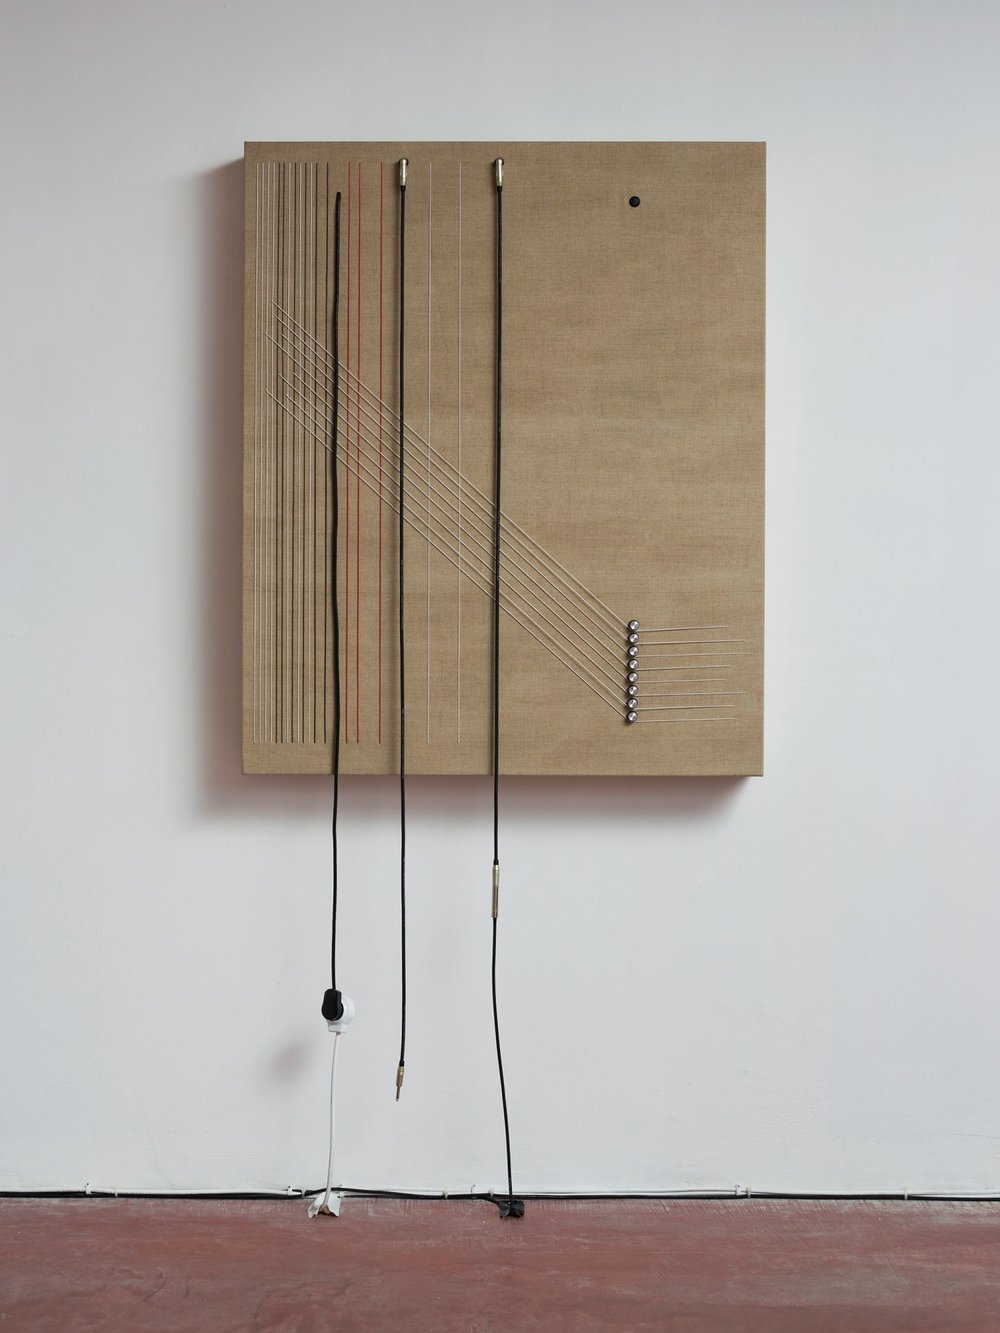 Transition , 2016, Wood, canvas, electronics, cables, knobs, speakers, 46 1/10 × 38 × 5 1/2""